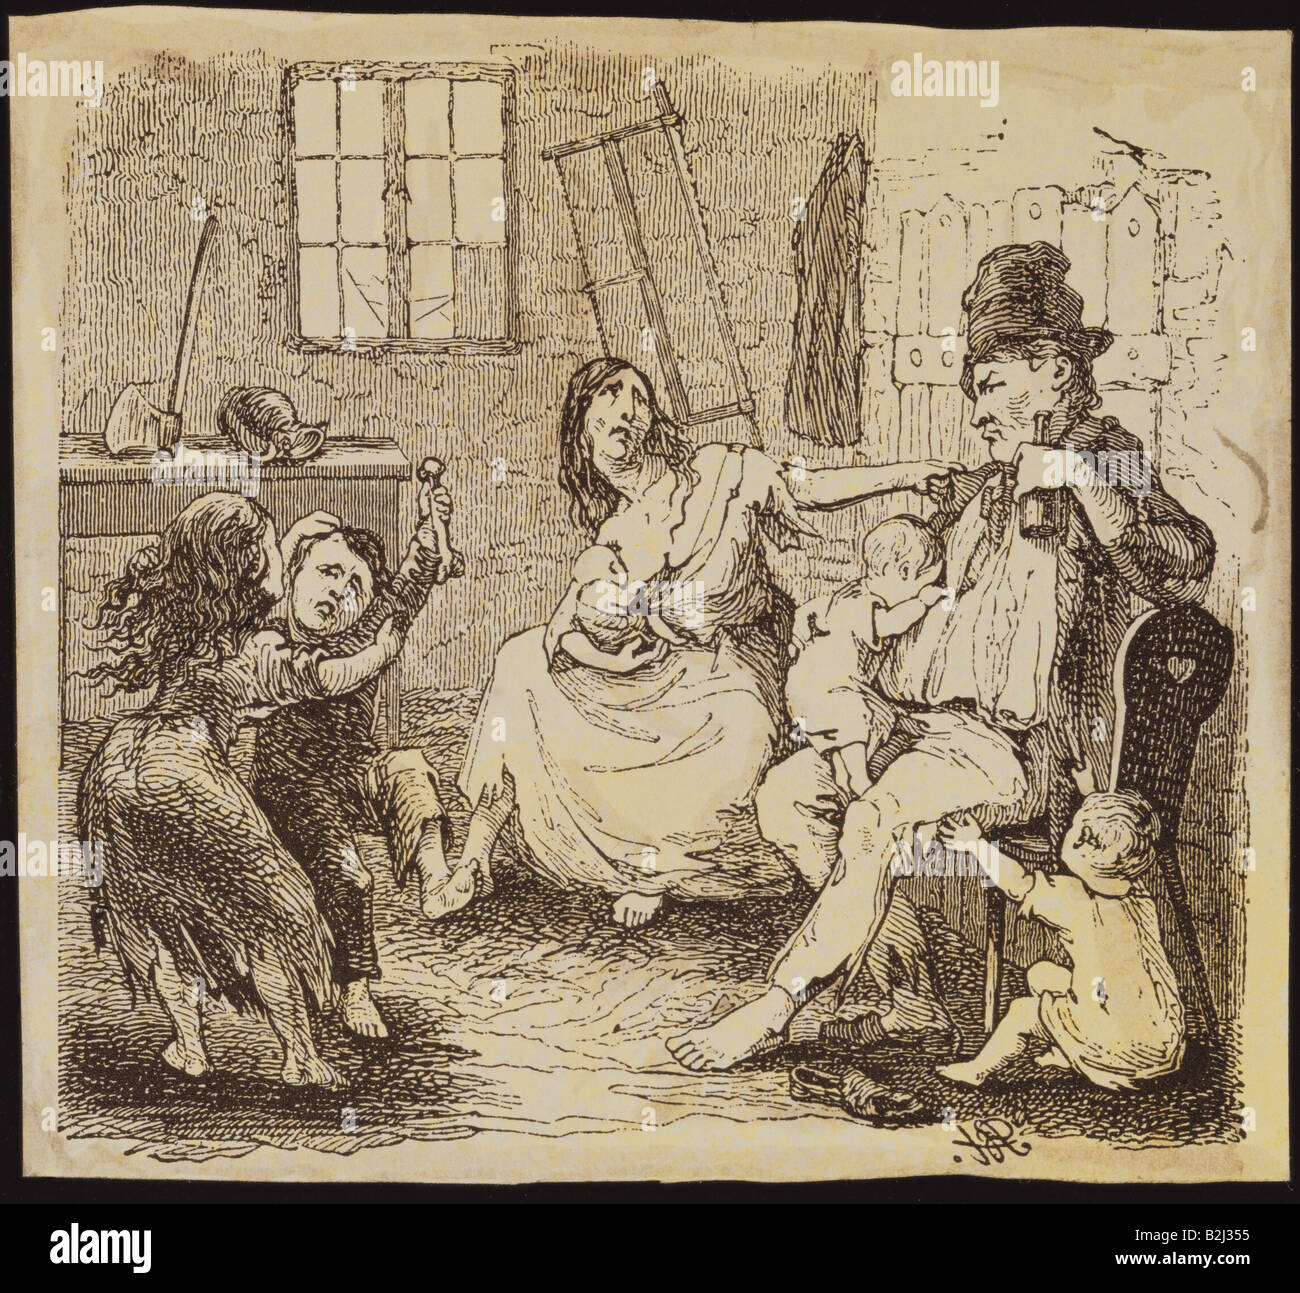 "people, misery / adversity, weaver family, illustration, from ""Illustrierte Zeitung"", Leipzig, Germany, 1845, private Stock Photo"